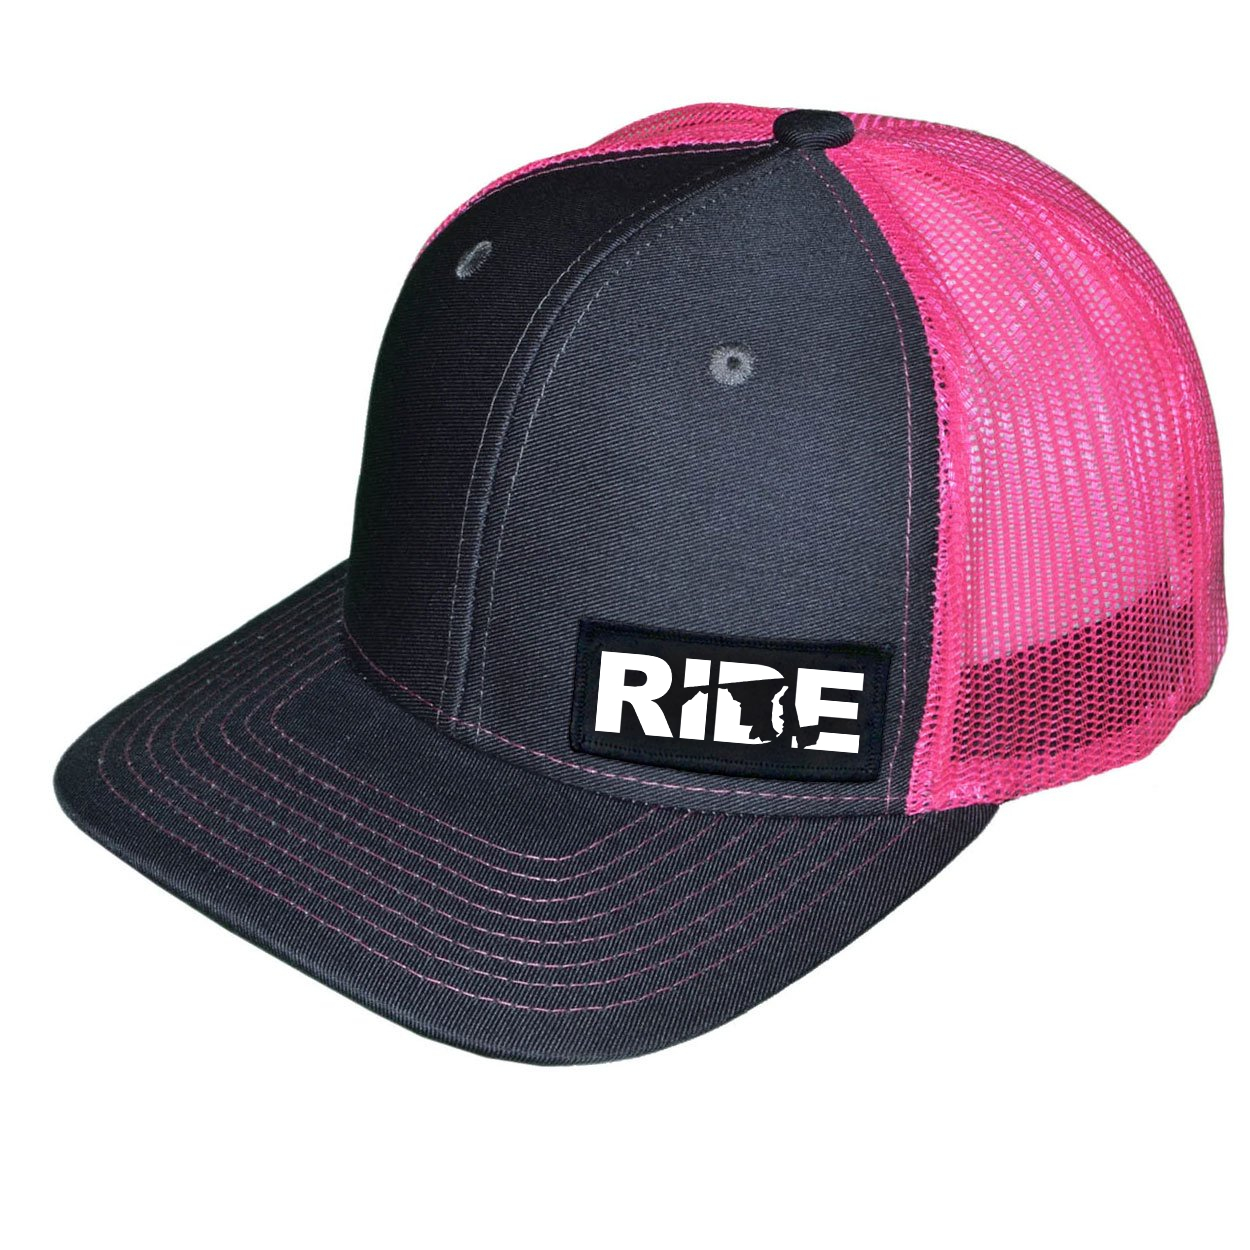 Ride Maryland Night Out Woven Patch Snapback Trucker Hat Dark Gray/Neon Pink (White Logo)